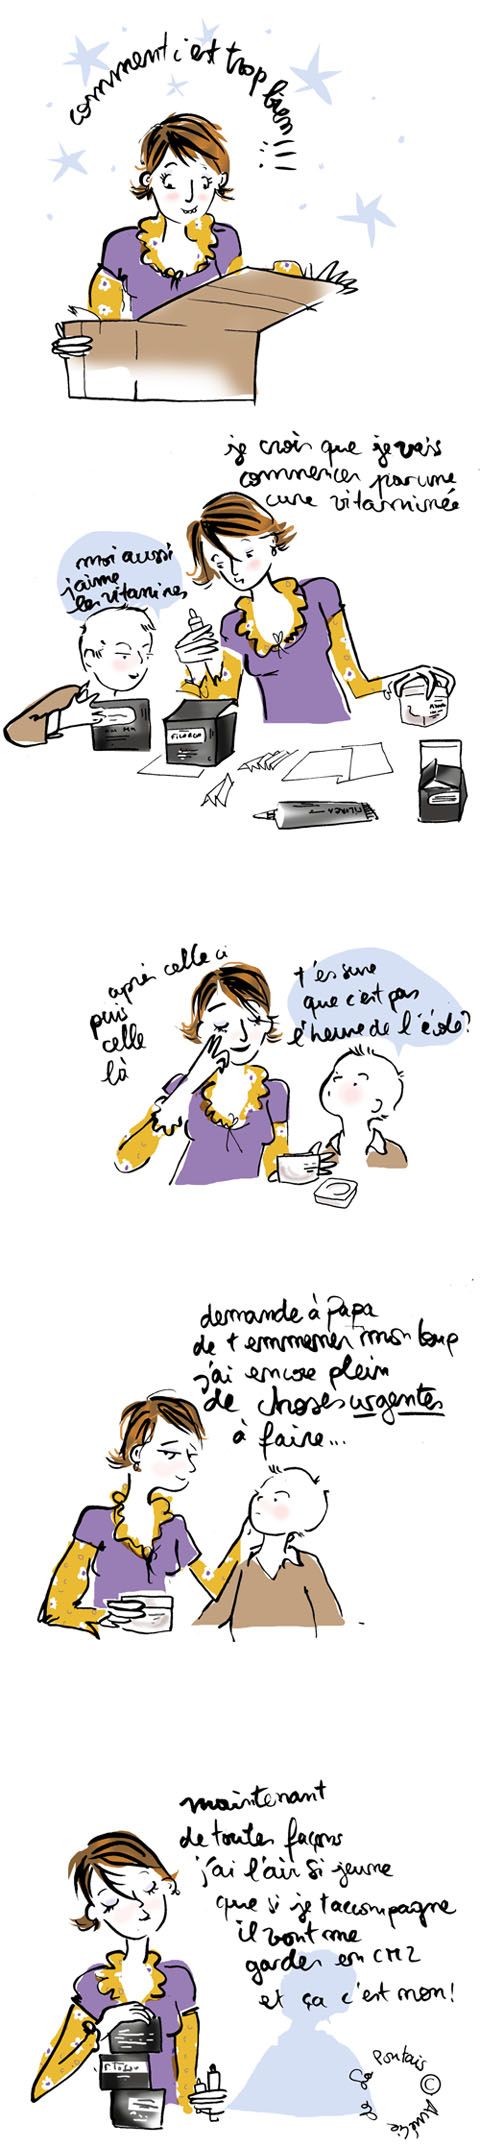 158-illustration-blogueuse-influente